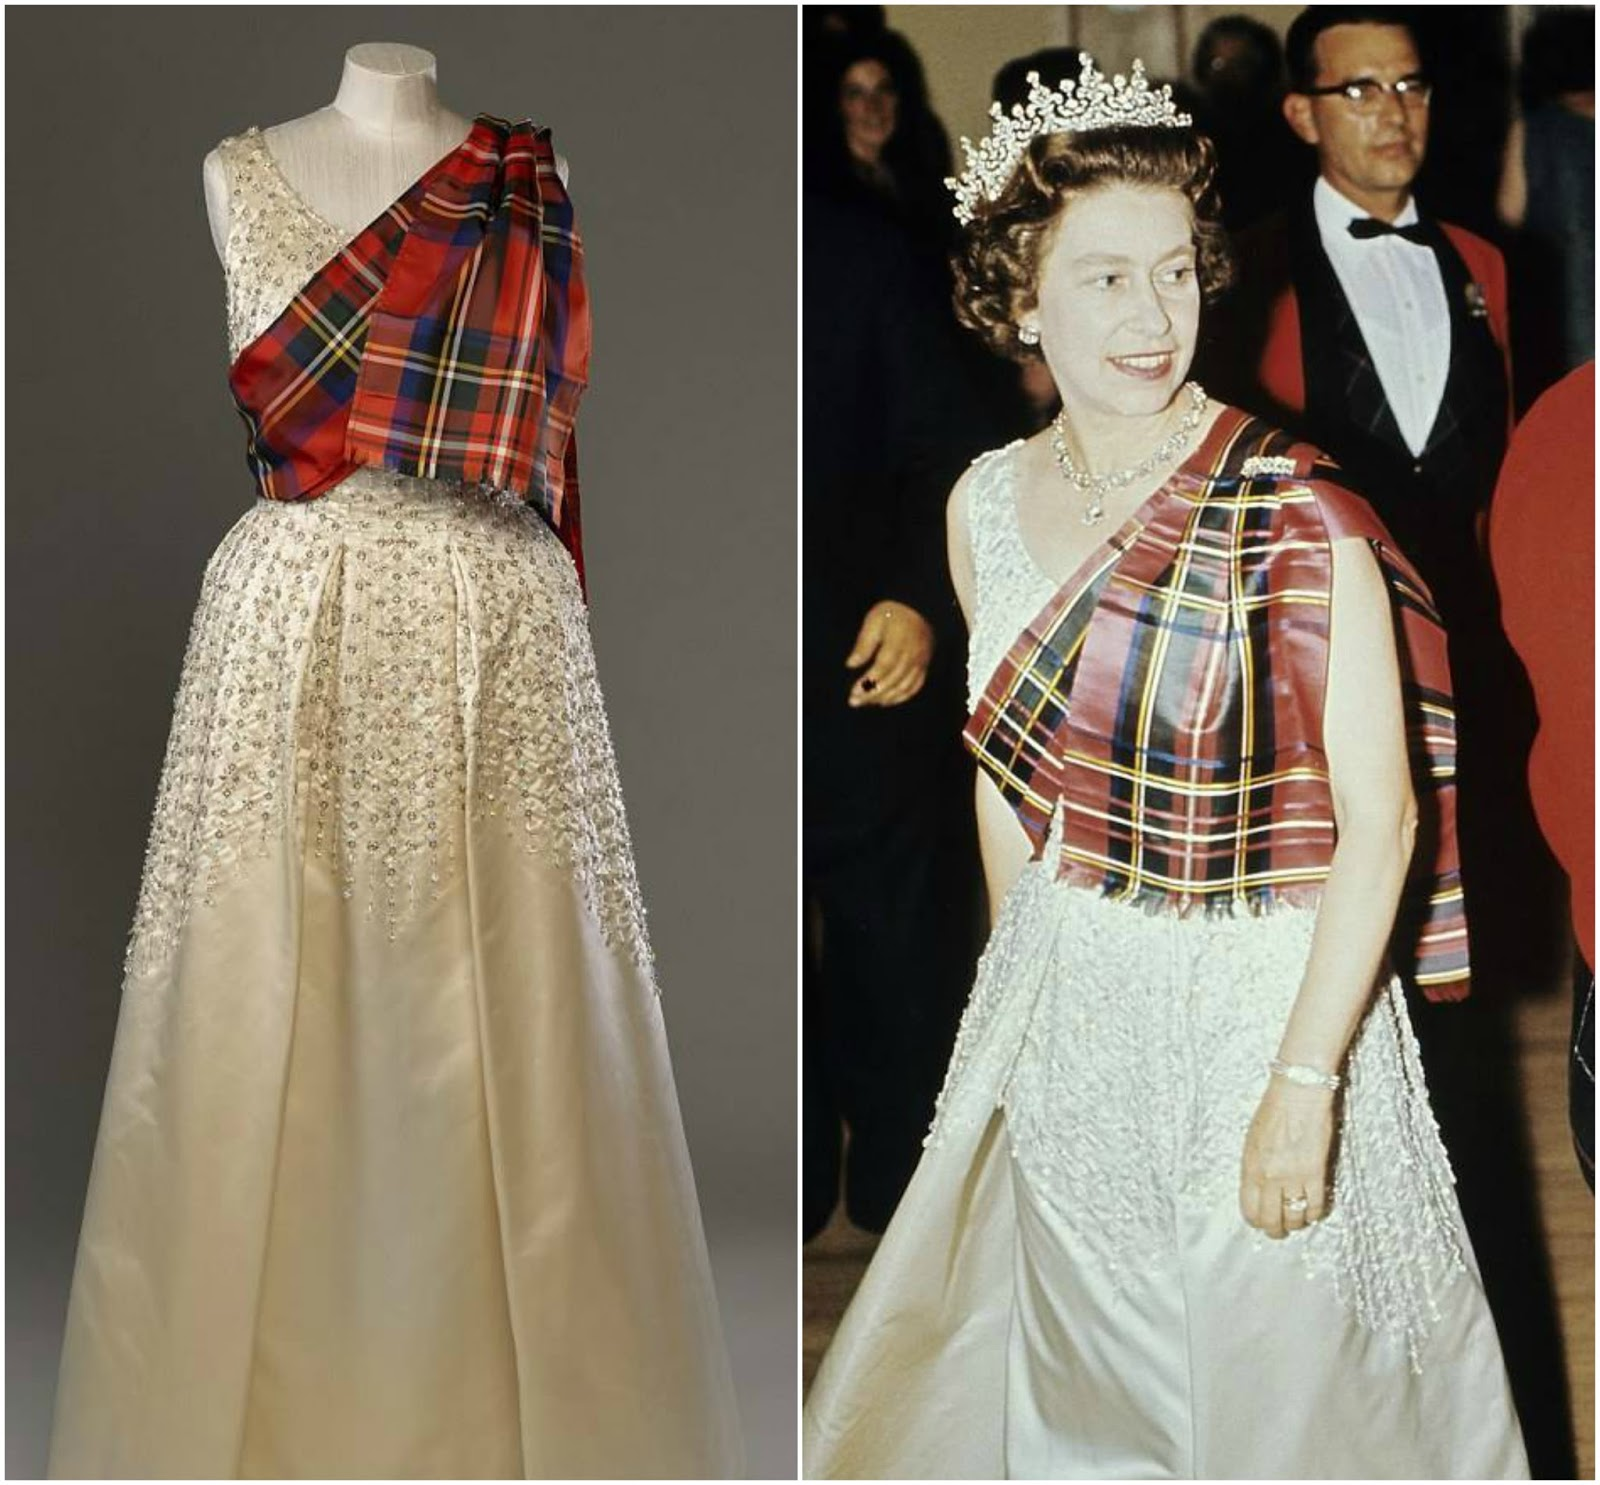 About William and Kate: Queen\'s Historic Gowns to go on Display in ...